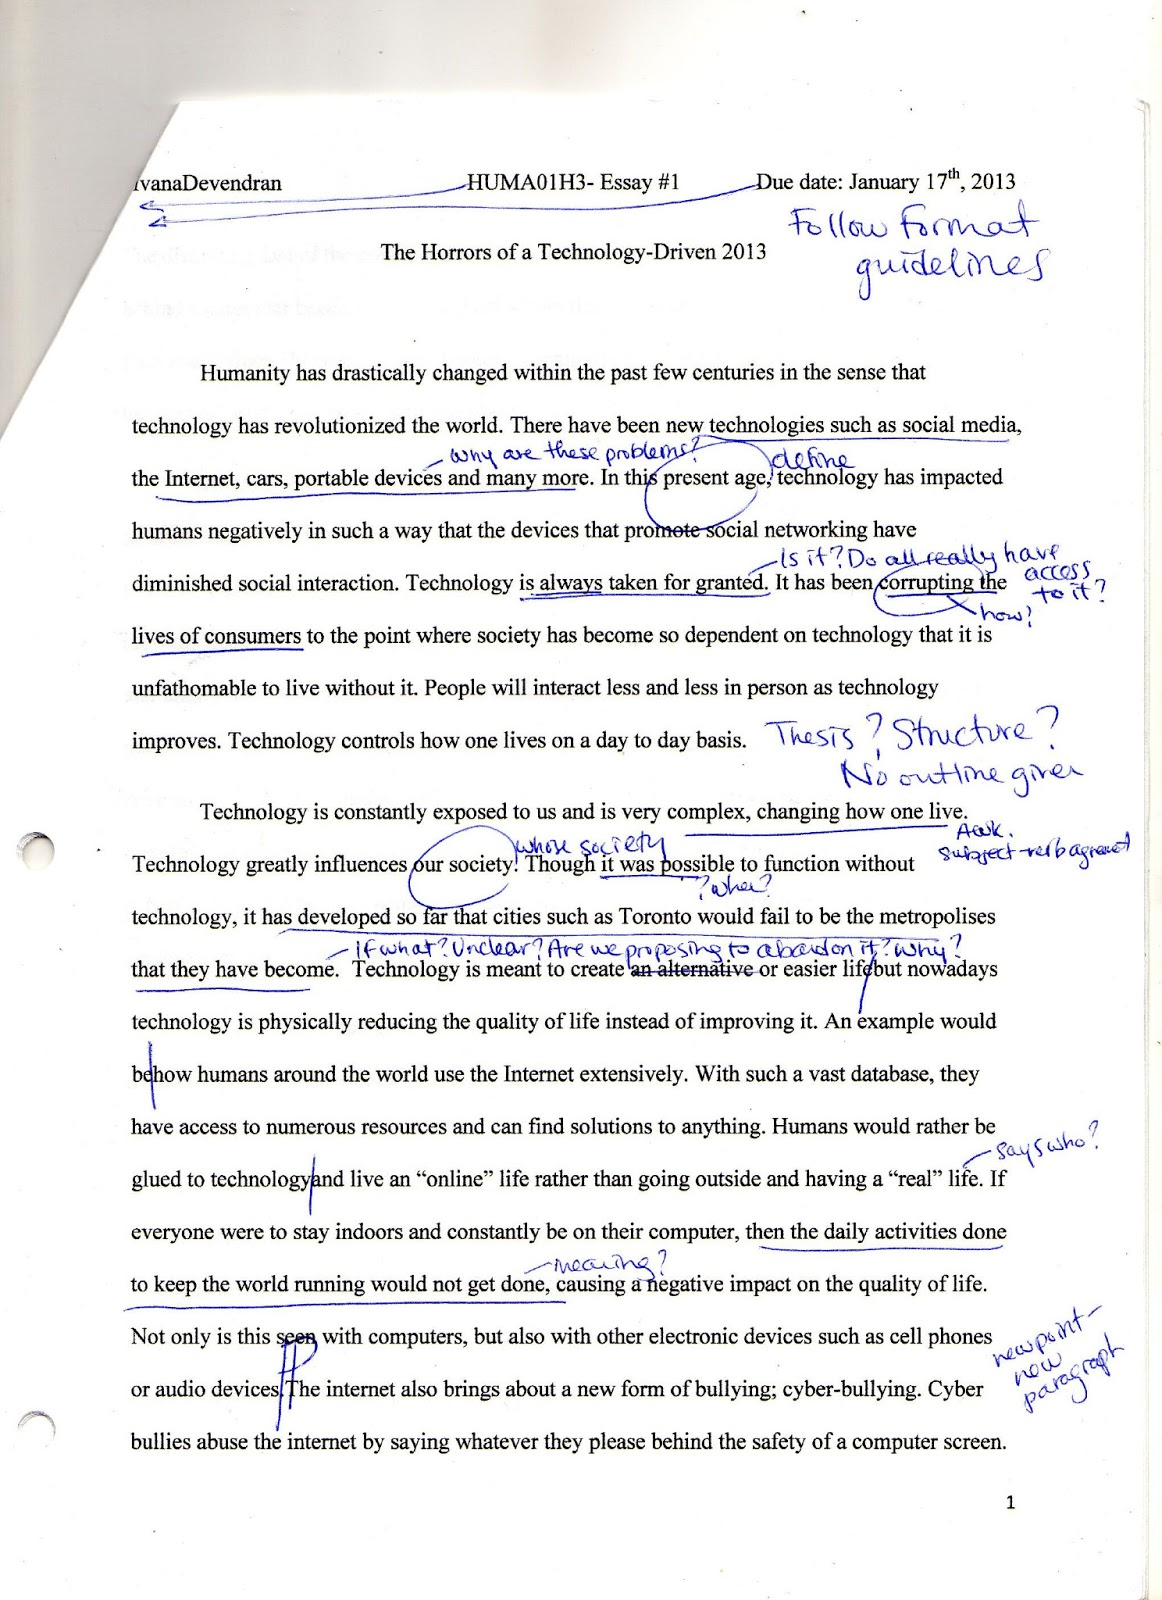 021 Issues To Write An Essay About Img008 Awesome Interesting Topics On For High School Social Full